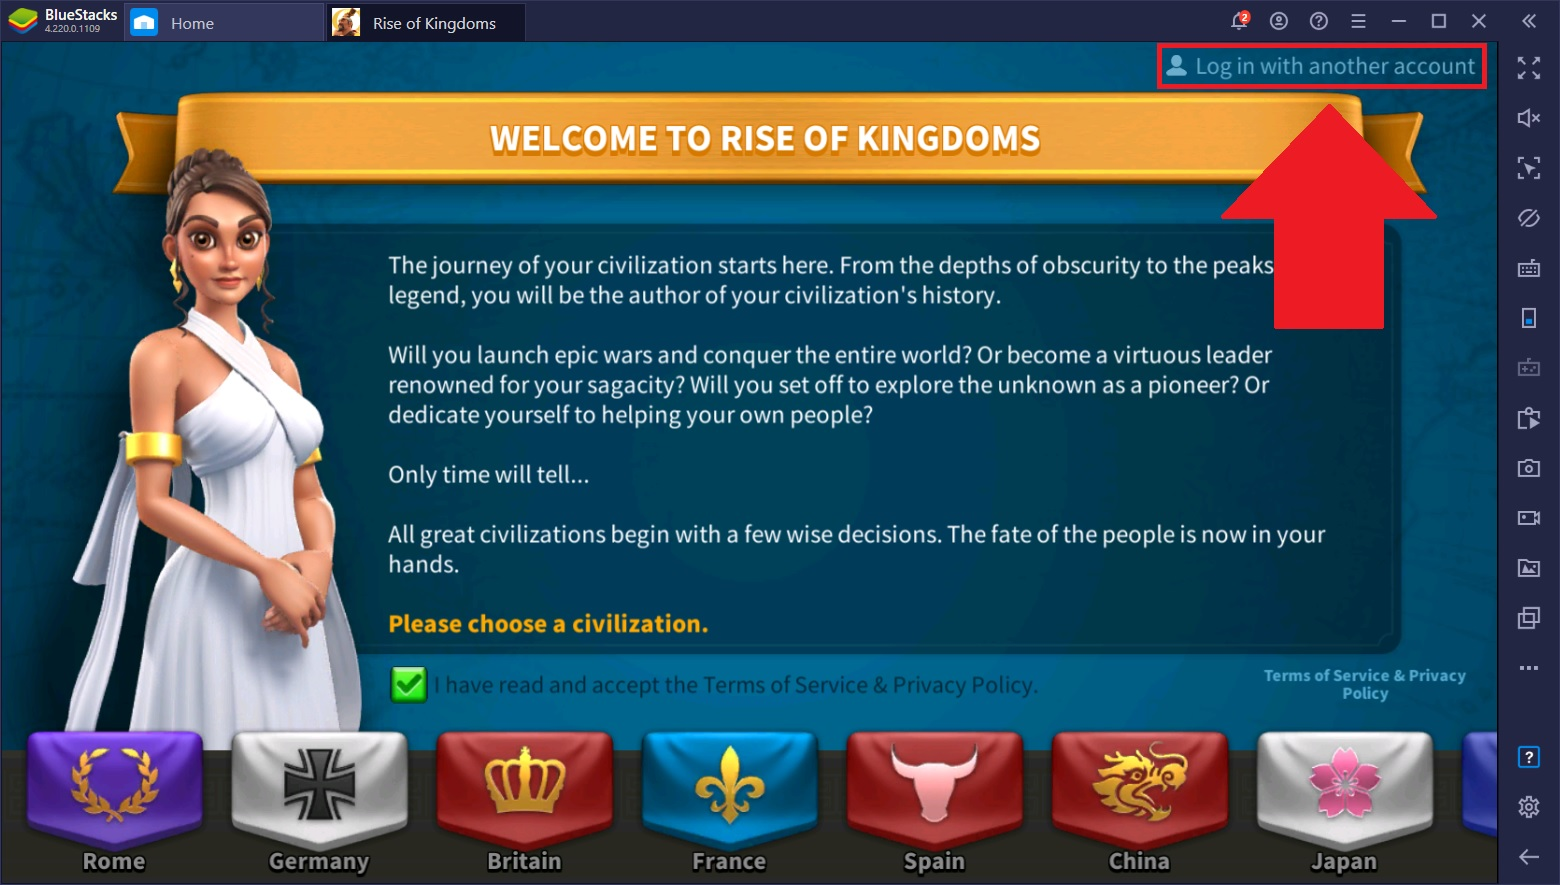 Rise of Kingdoms – Common Account Issues When Playing on Multiple Devices